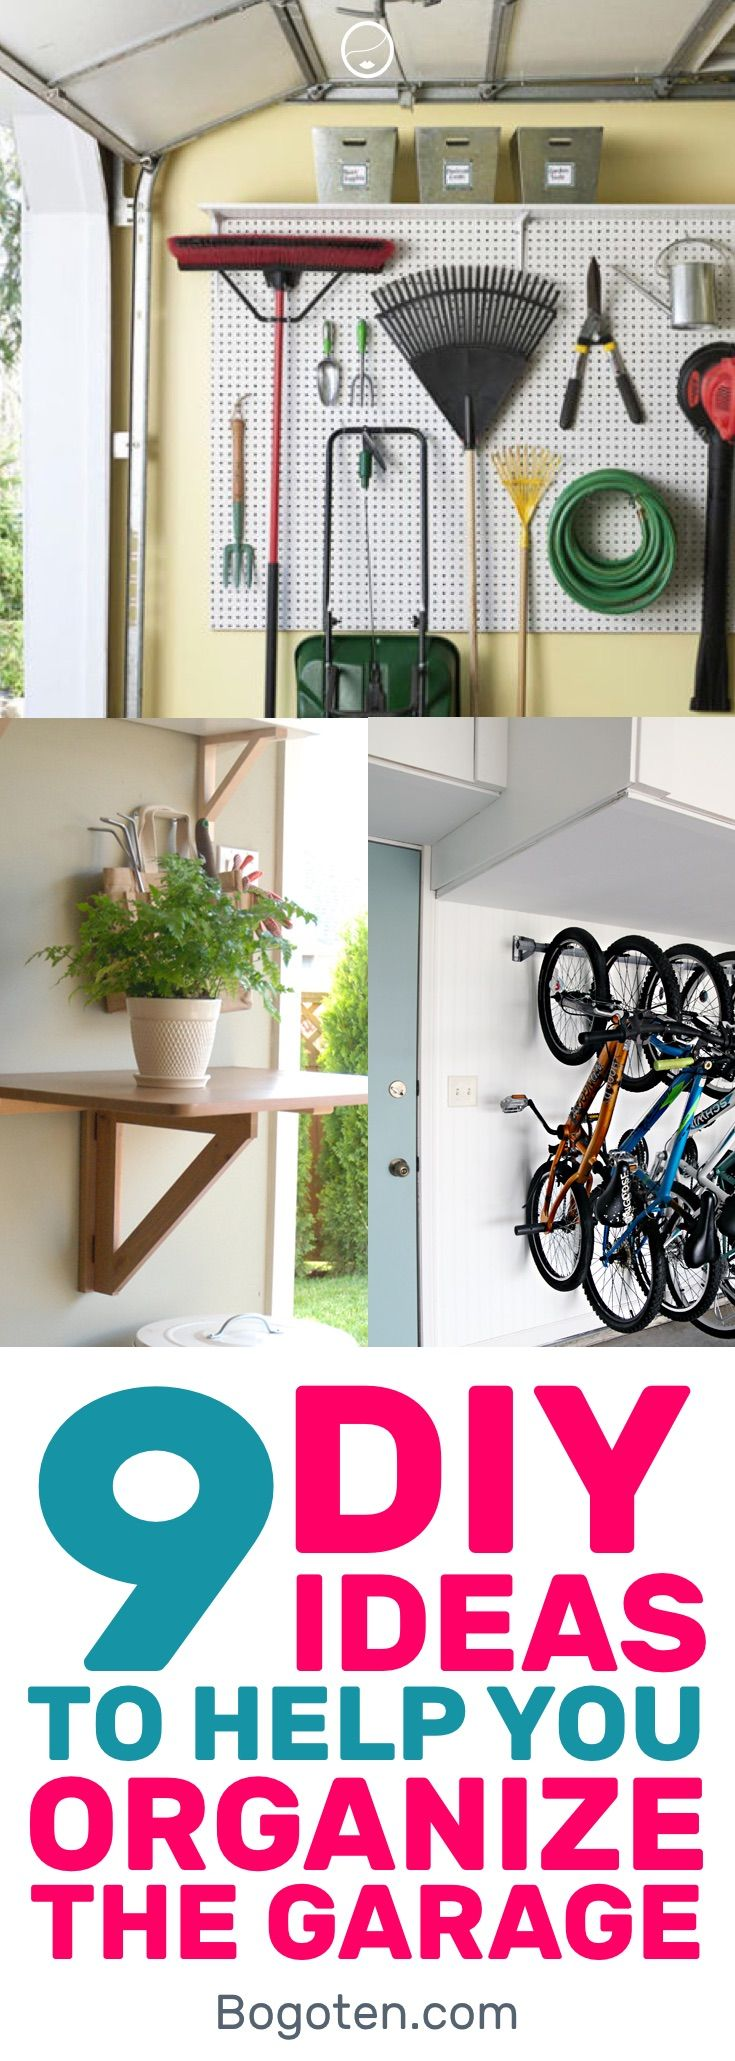 Great DIY Garage Organization ideas to help keep things organized. Something to pin and keep an eye on for later as you organize your messy garage. #DIY #HomeDecor #Organization